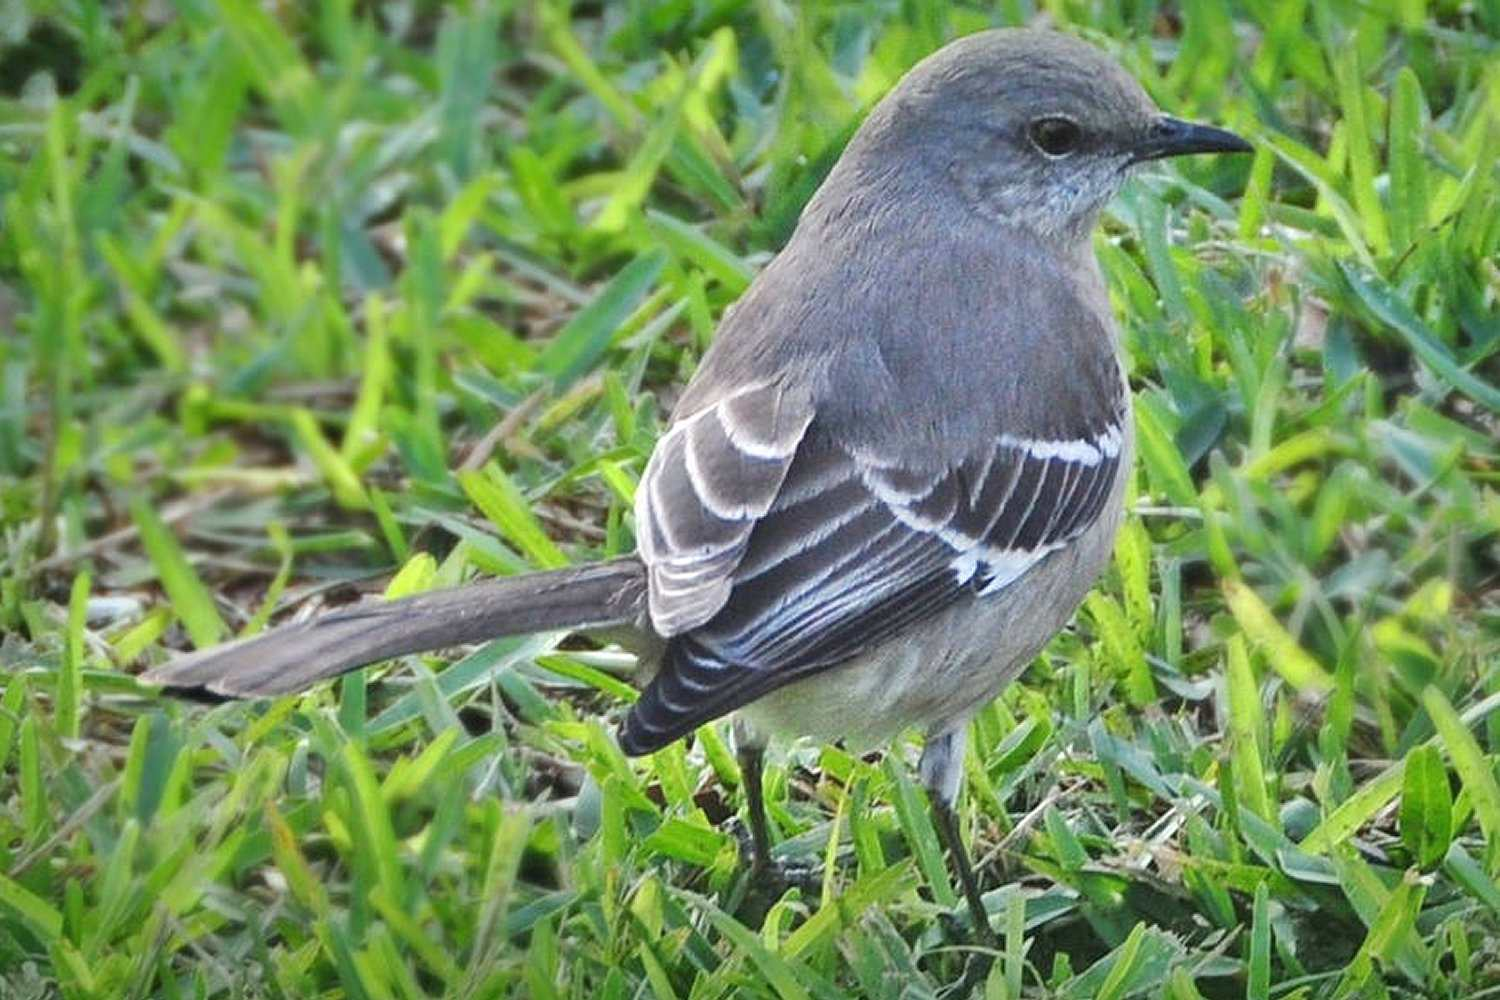 Northern Mockingbird, the state bird in Mississippi, standing in the grass.